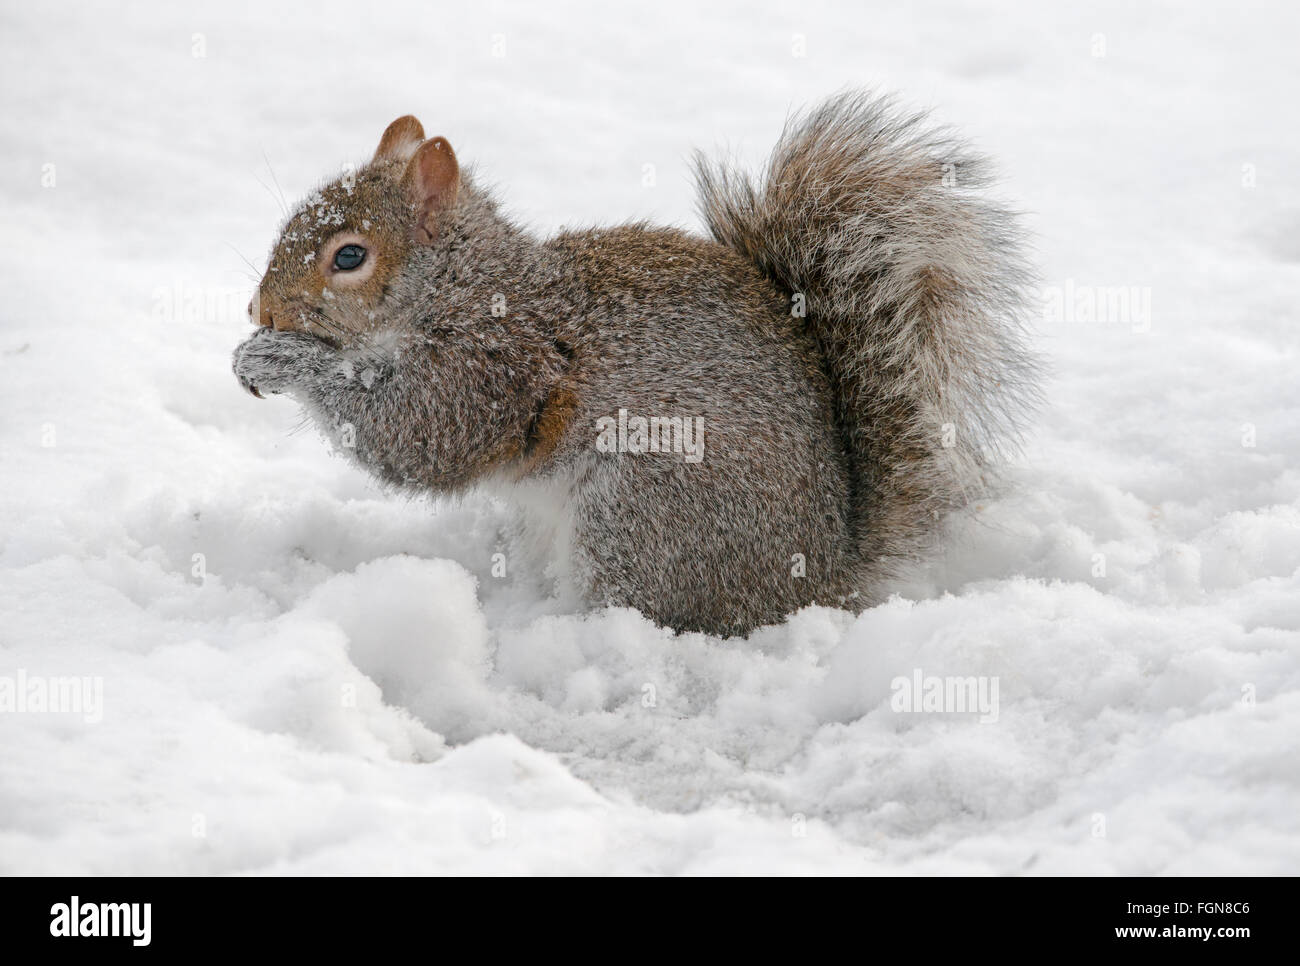 Eastern Gray Squirrel (Sciurus carolinensis) eating stored nuts, after snow storm, Michigan USA - Stock Image